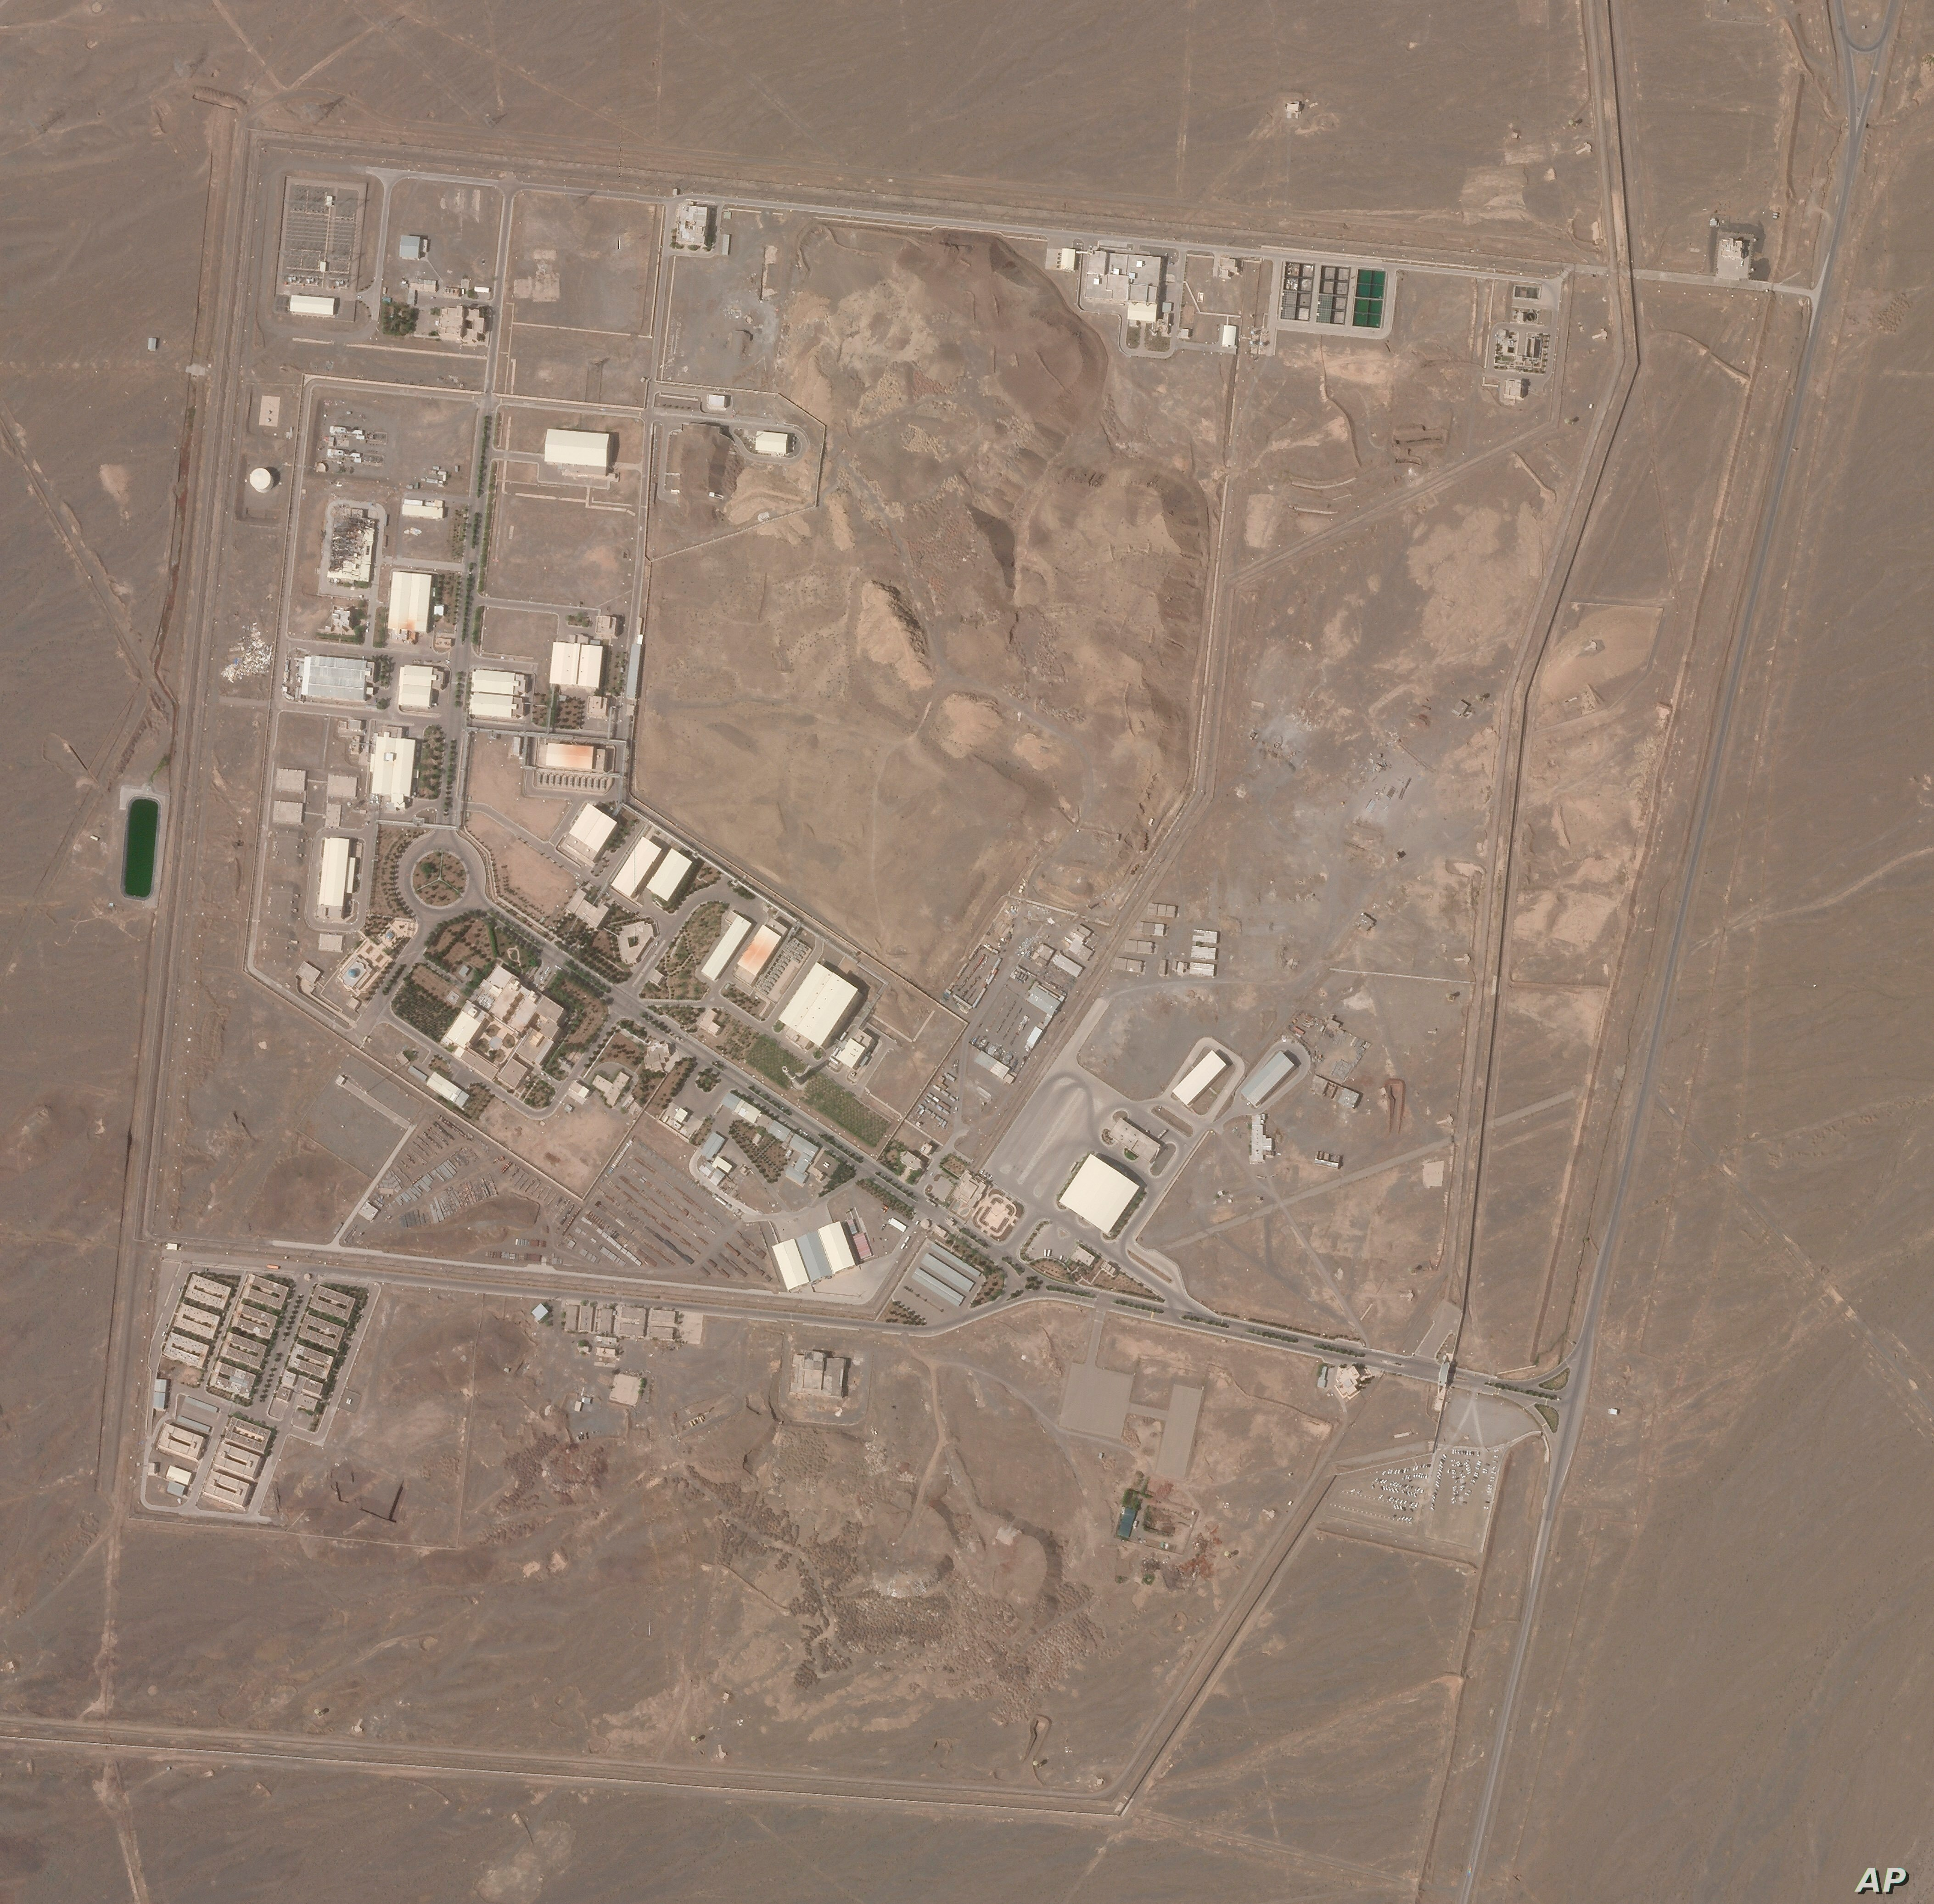 Inc. shows Iran's Natanz nuclear facility on Wednesday